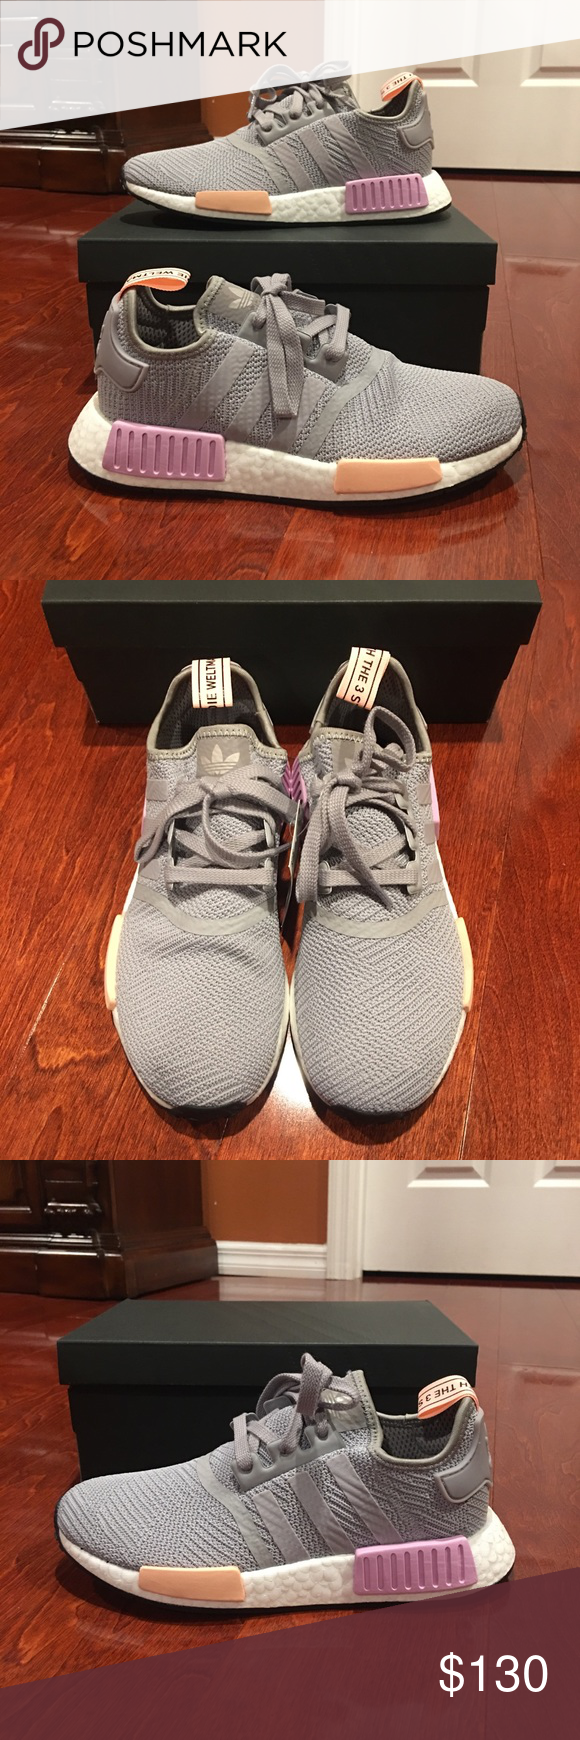 95f40a16df4bc NIB Women s Adidas NMD R1 Light Granite Shoes  NO TRADES. PRICE AS LISTED  FOR